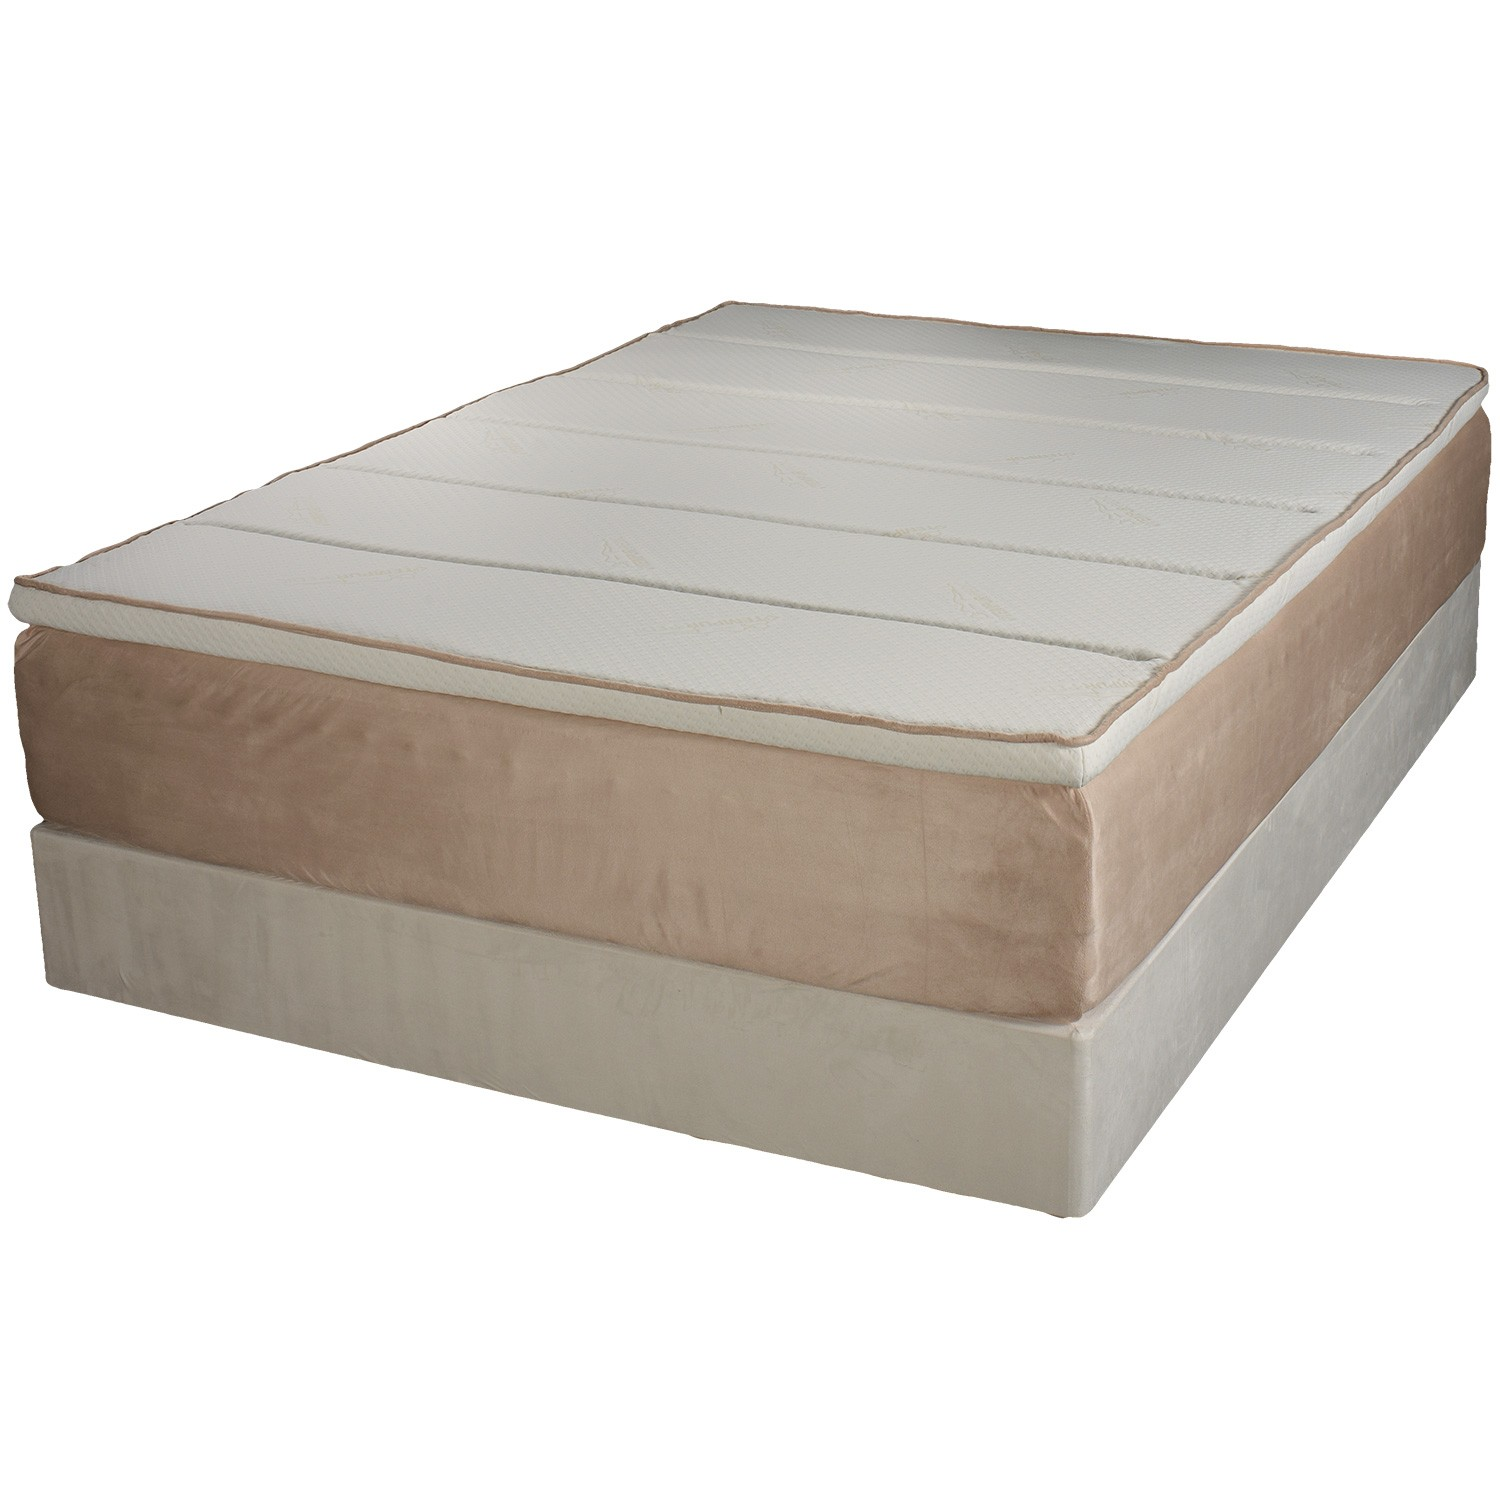 Twin size pillow top mattress decor ideasdecor ideas Twin mattress size